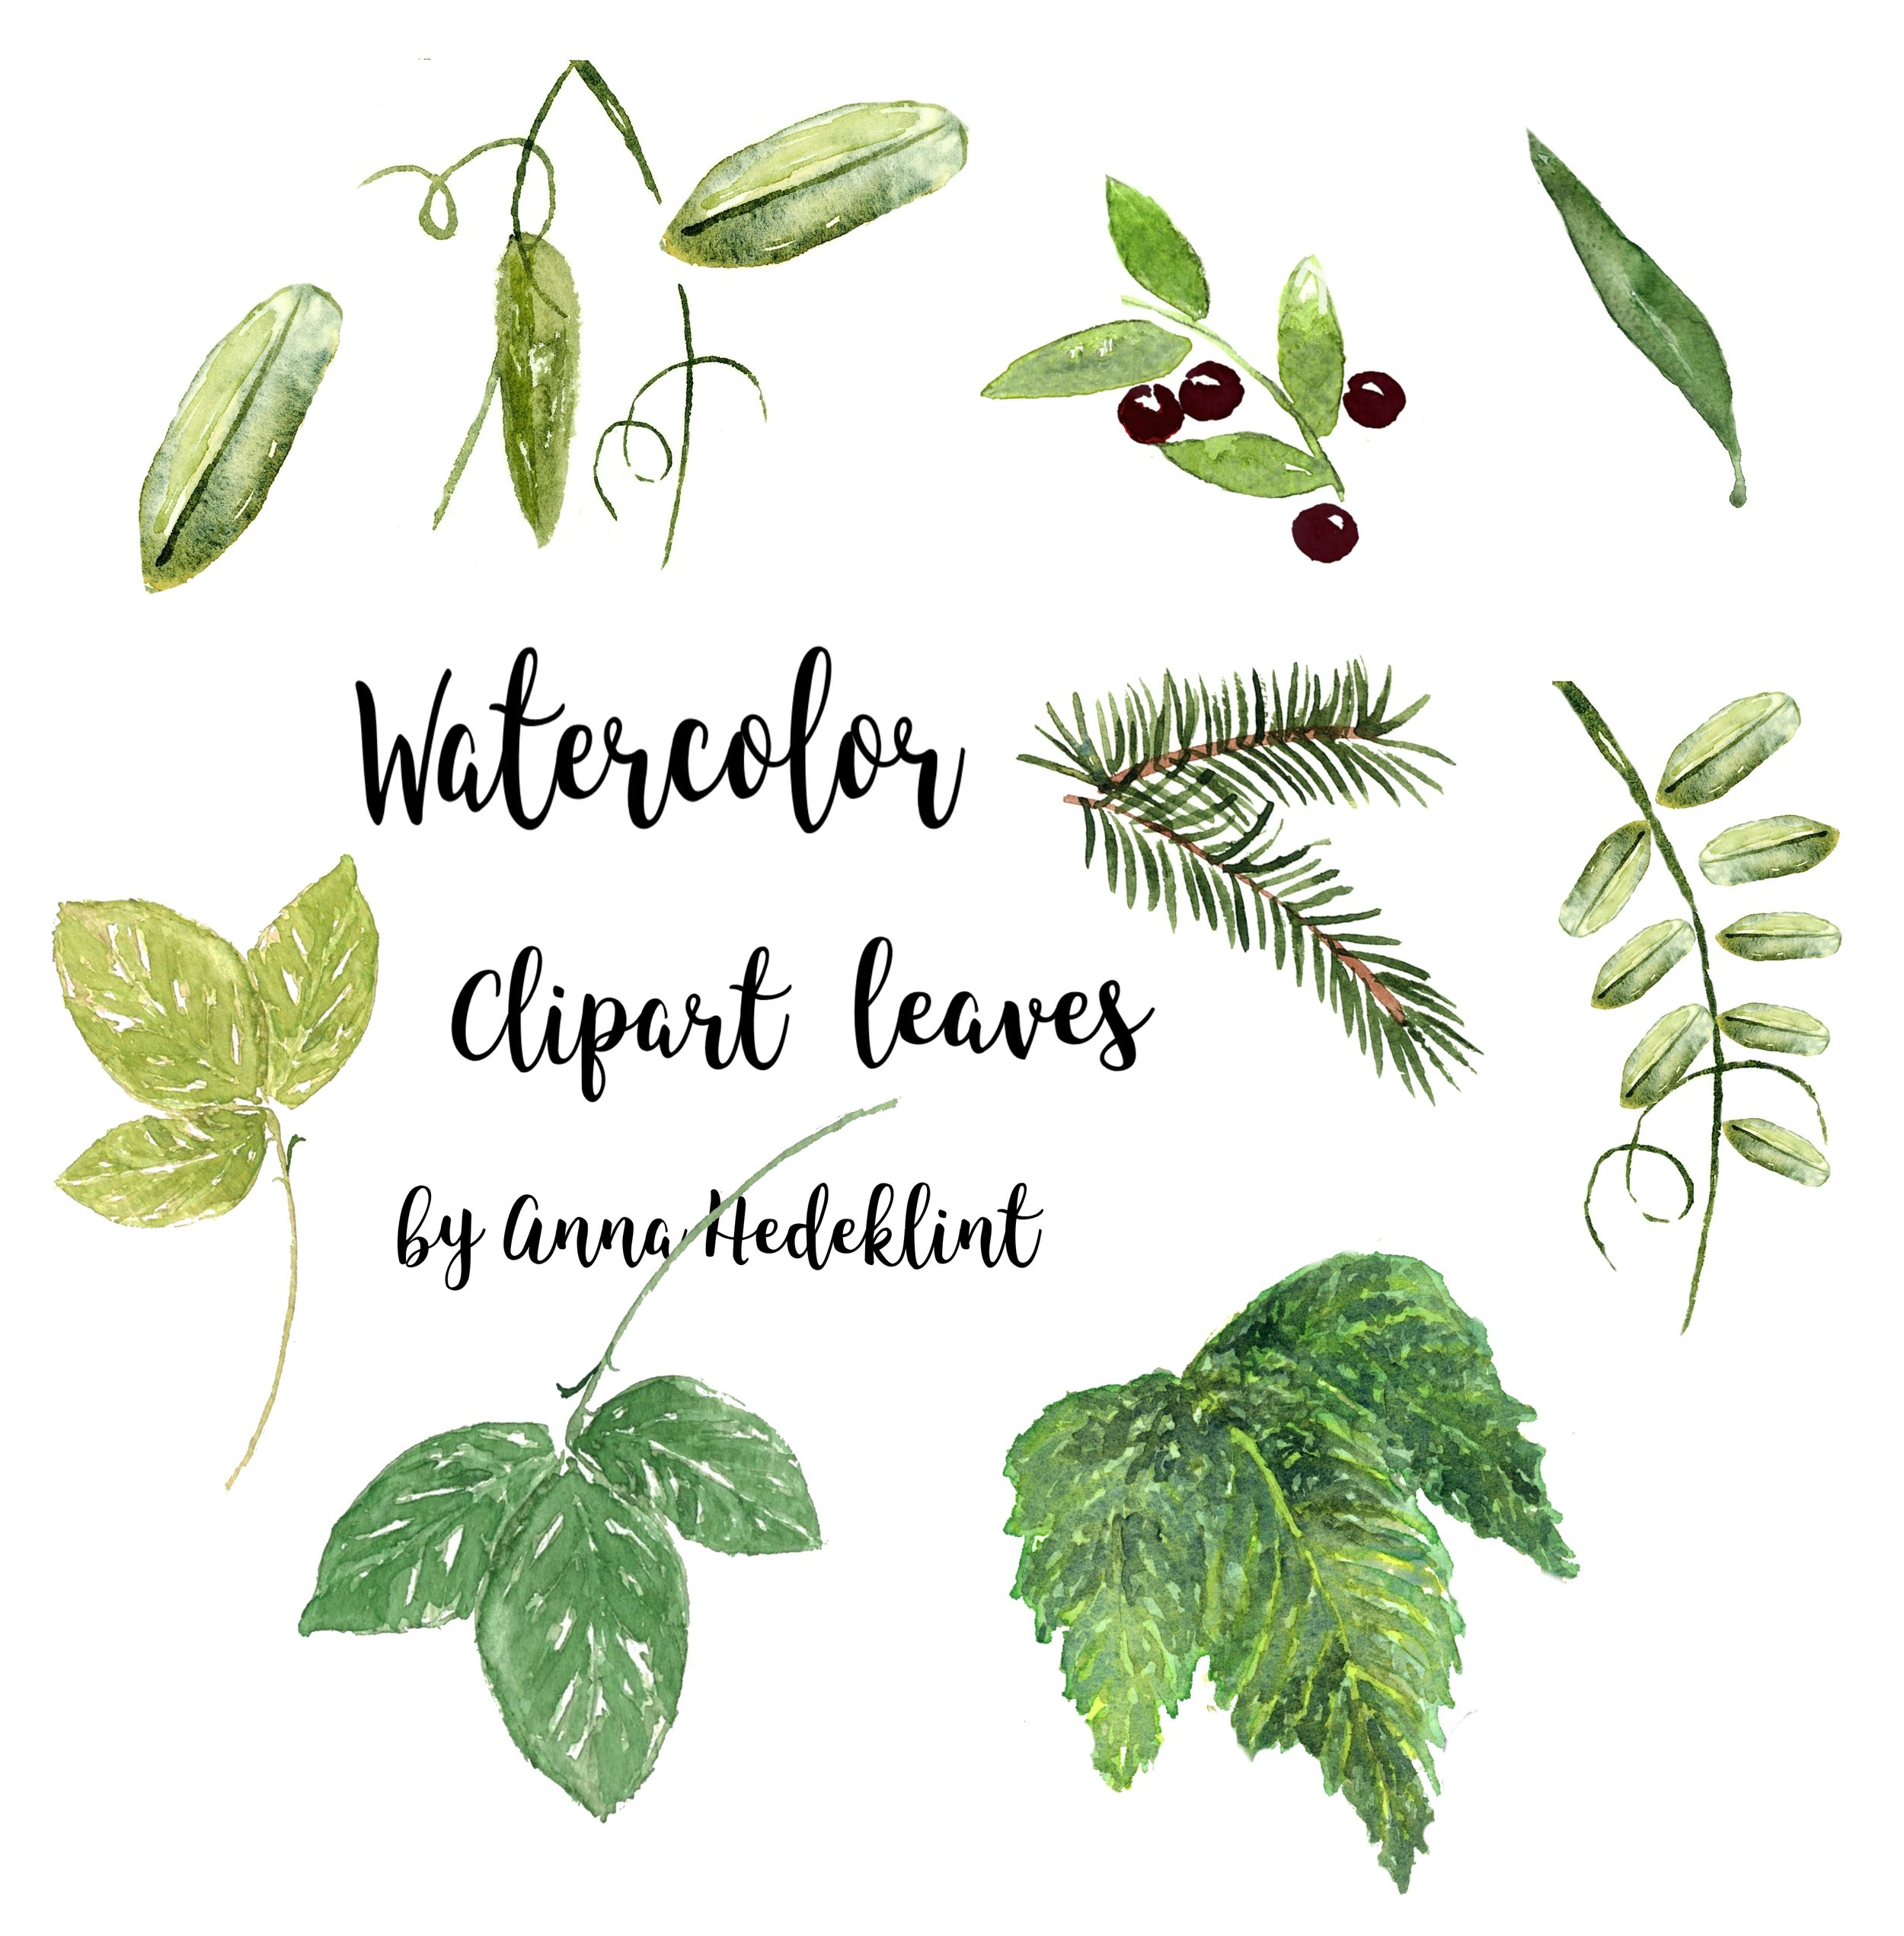 Watercolor Leaves Clipart Template Anna Hedeklint Design Illustration